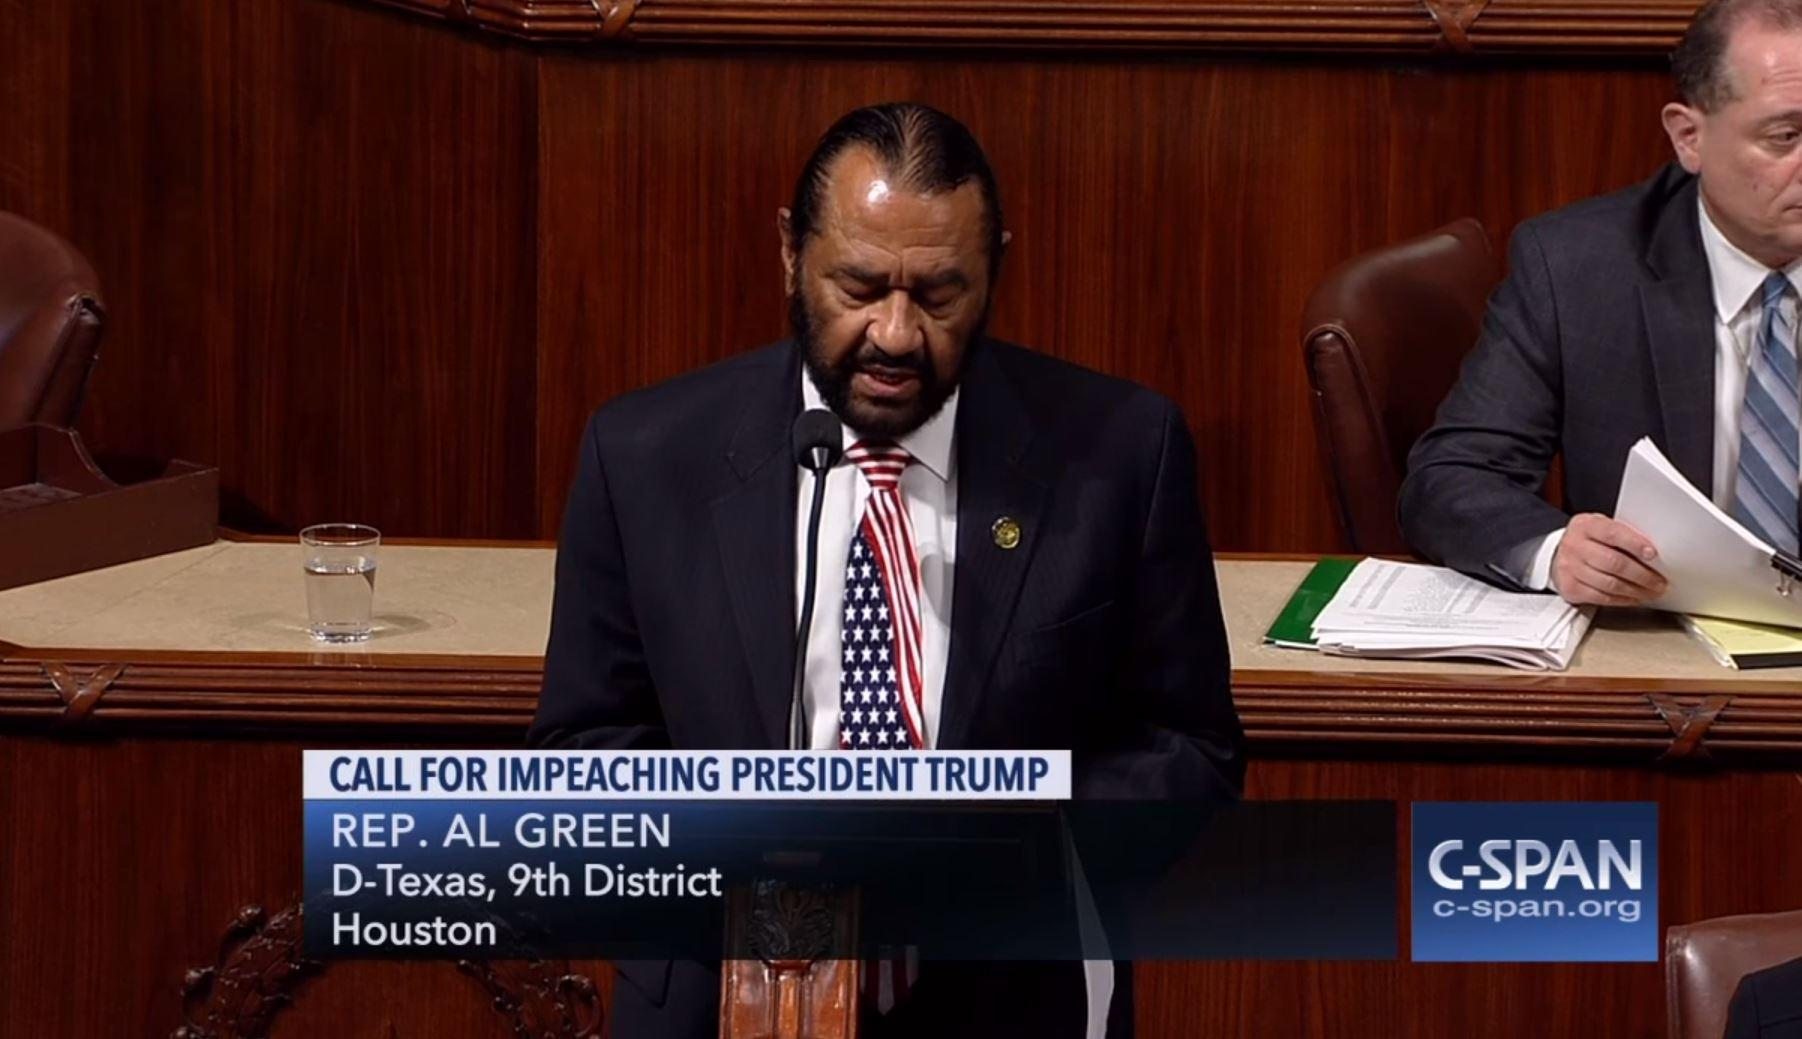 House overwhelmingly votes to defeat Democrat's bid to impeach President Trump